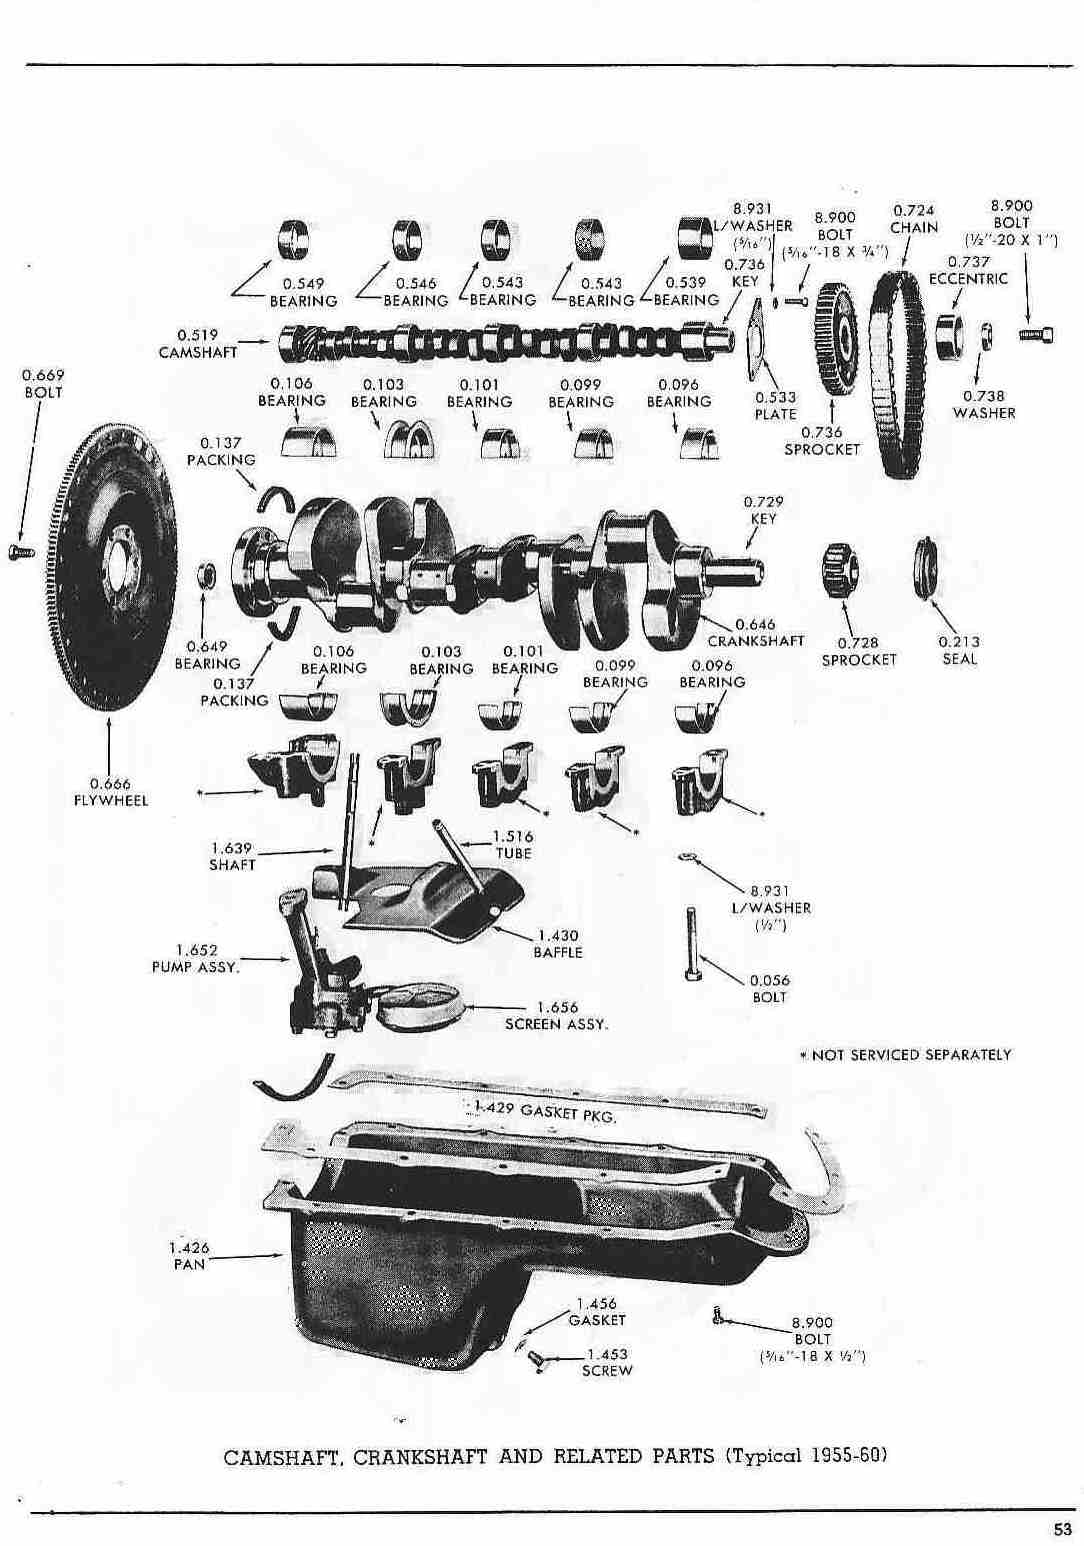 Pontiac 1960 Master Parts Catalog Starting Circuit Diagram For The 1955 All Models 53 Camshaft Crankshaft And Related Typical 60